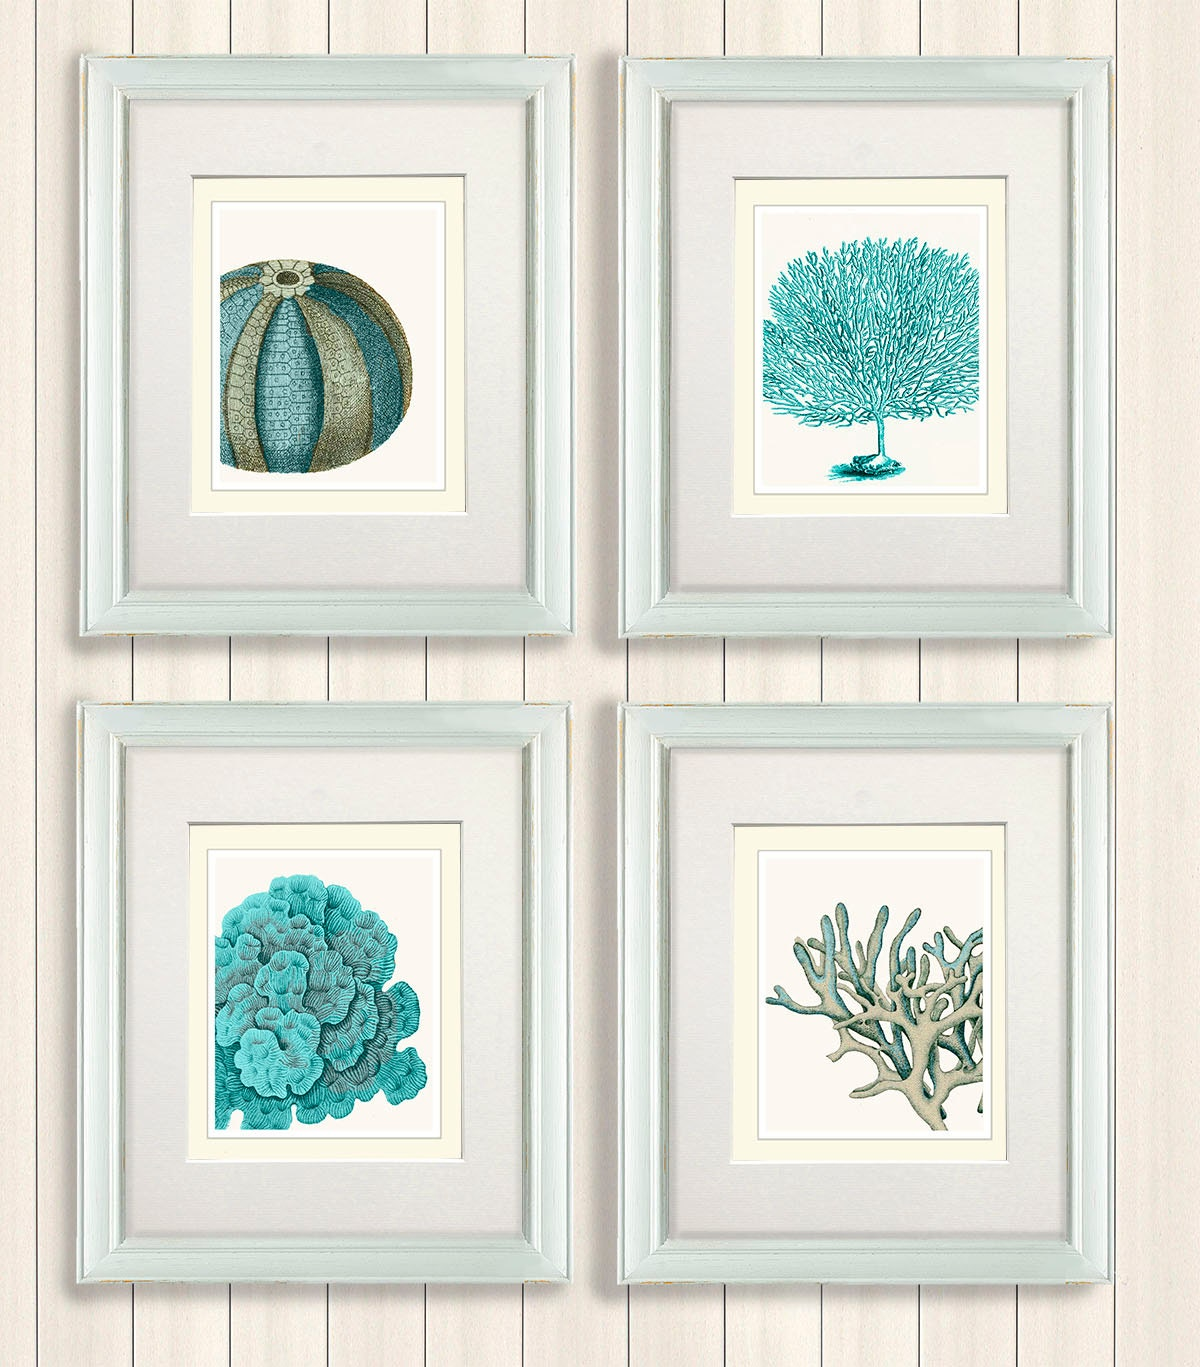 Bathroom Sea Wall Decor : Set of blue coral sea urchin prints nautical print art